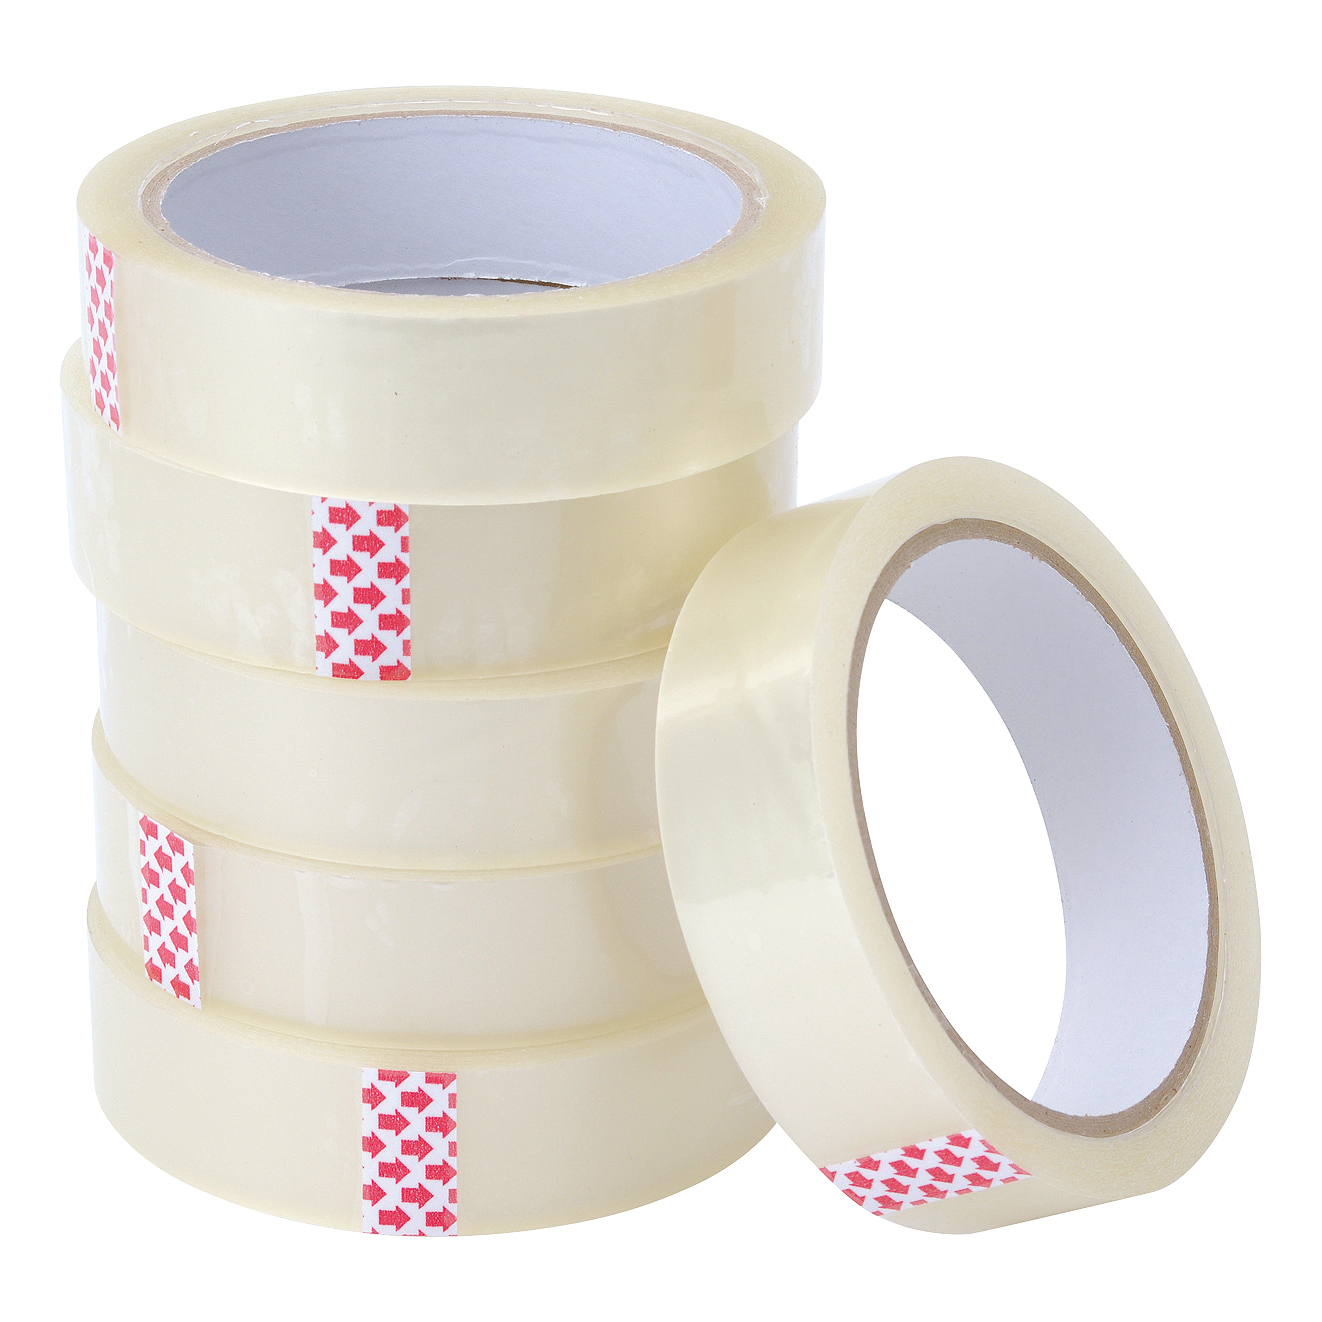 5 Star Value Clear Tape 24mmx66m Polypropylene Pack 6